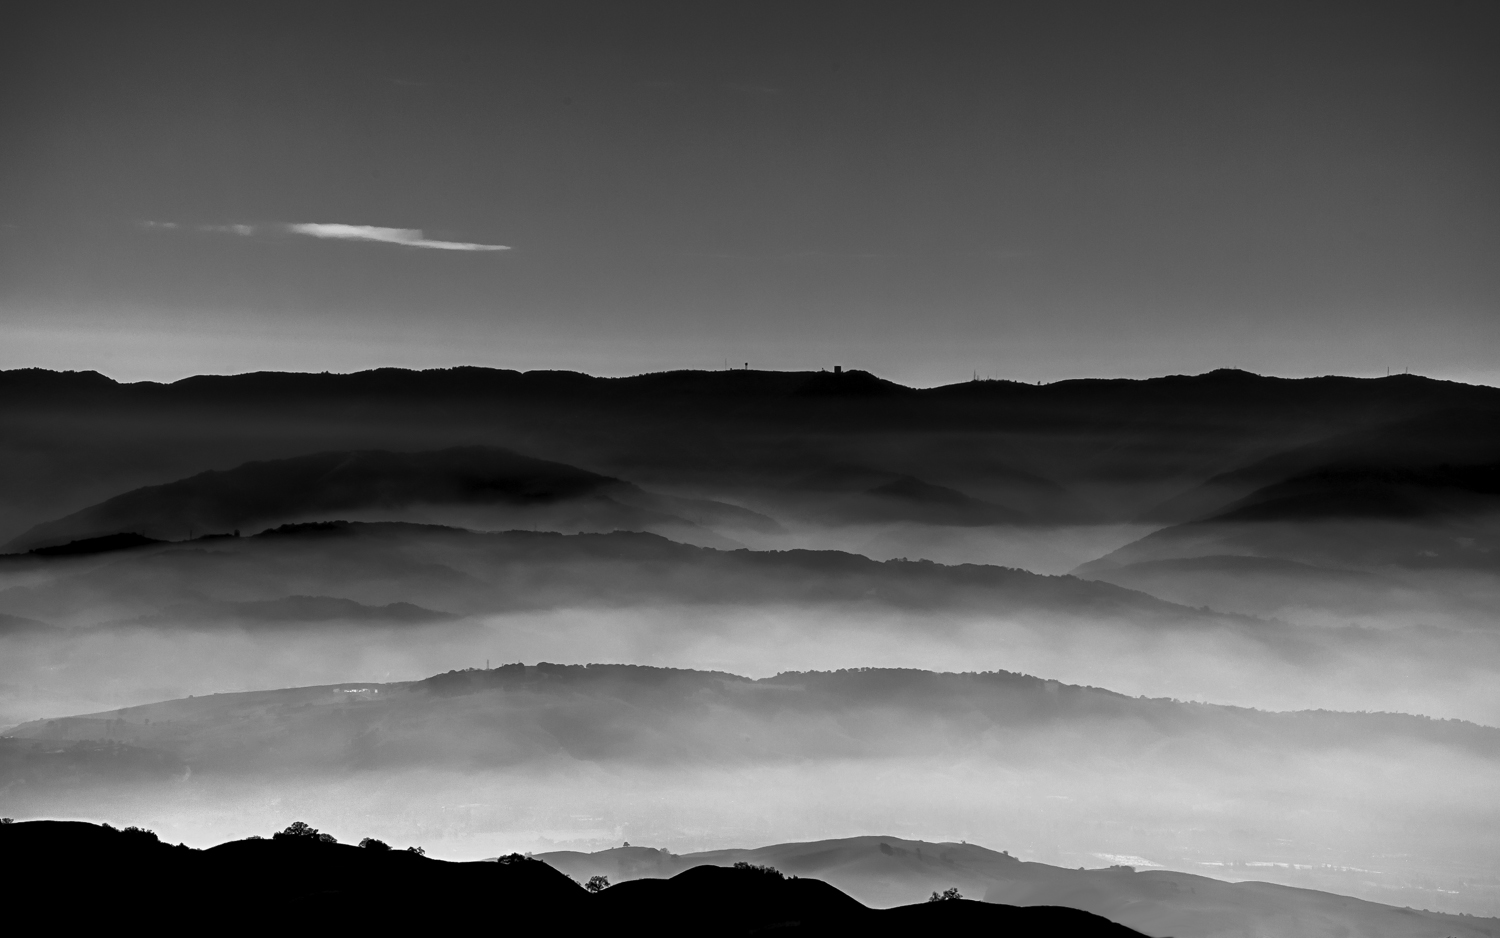 Black and White HDR Silicon Valley from Mt. Hamilton